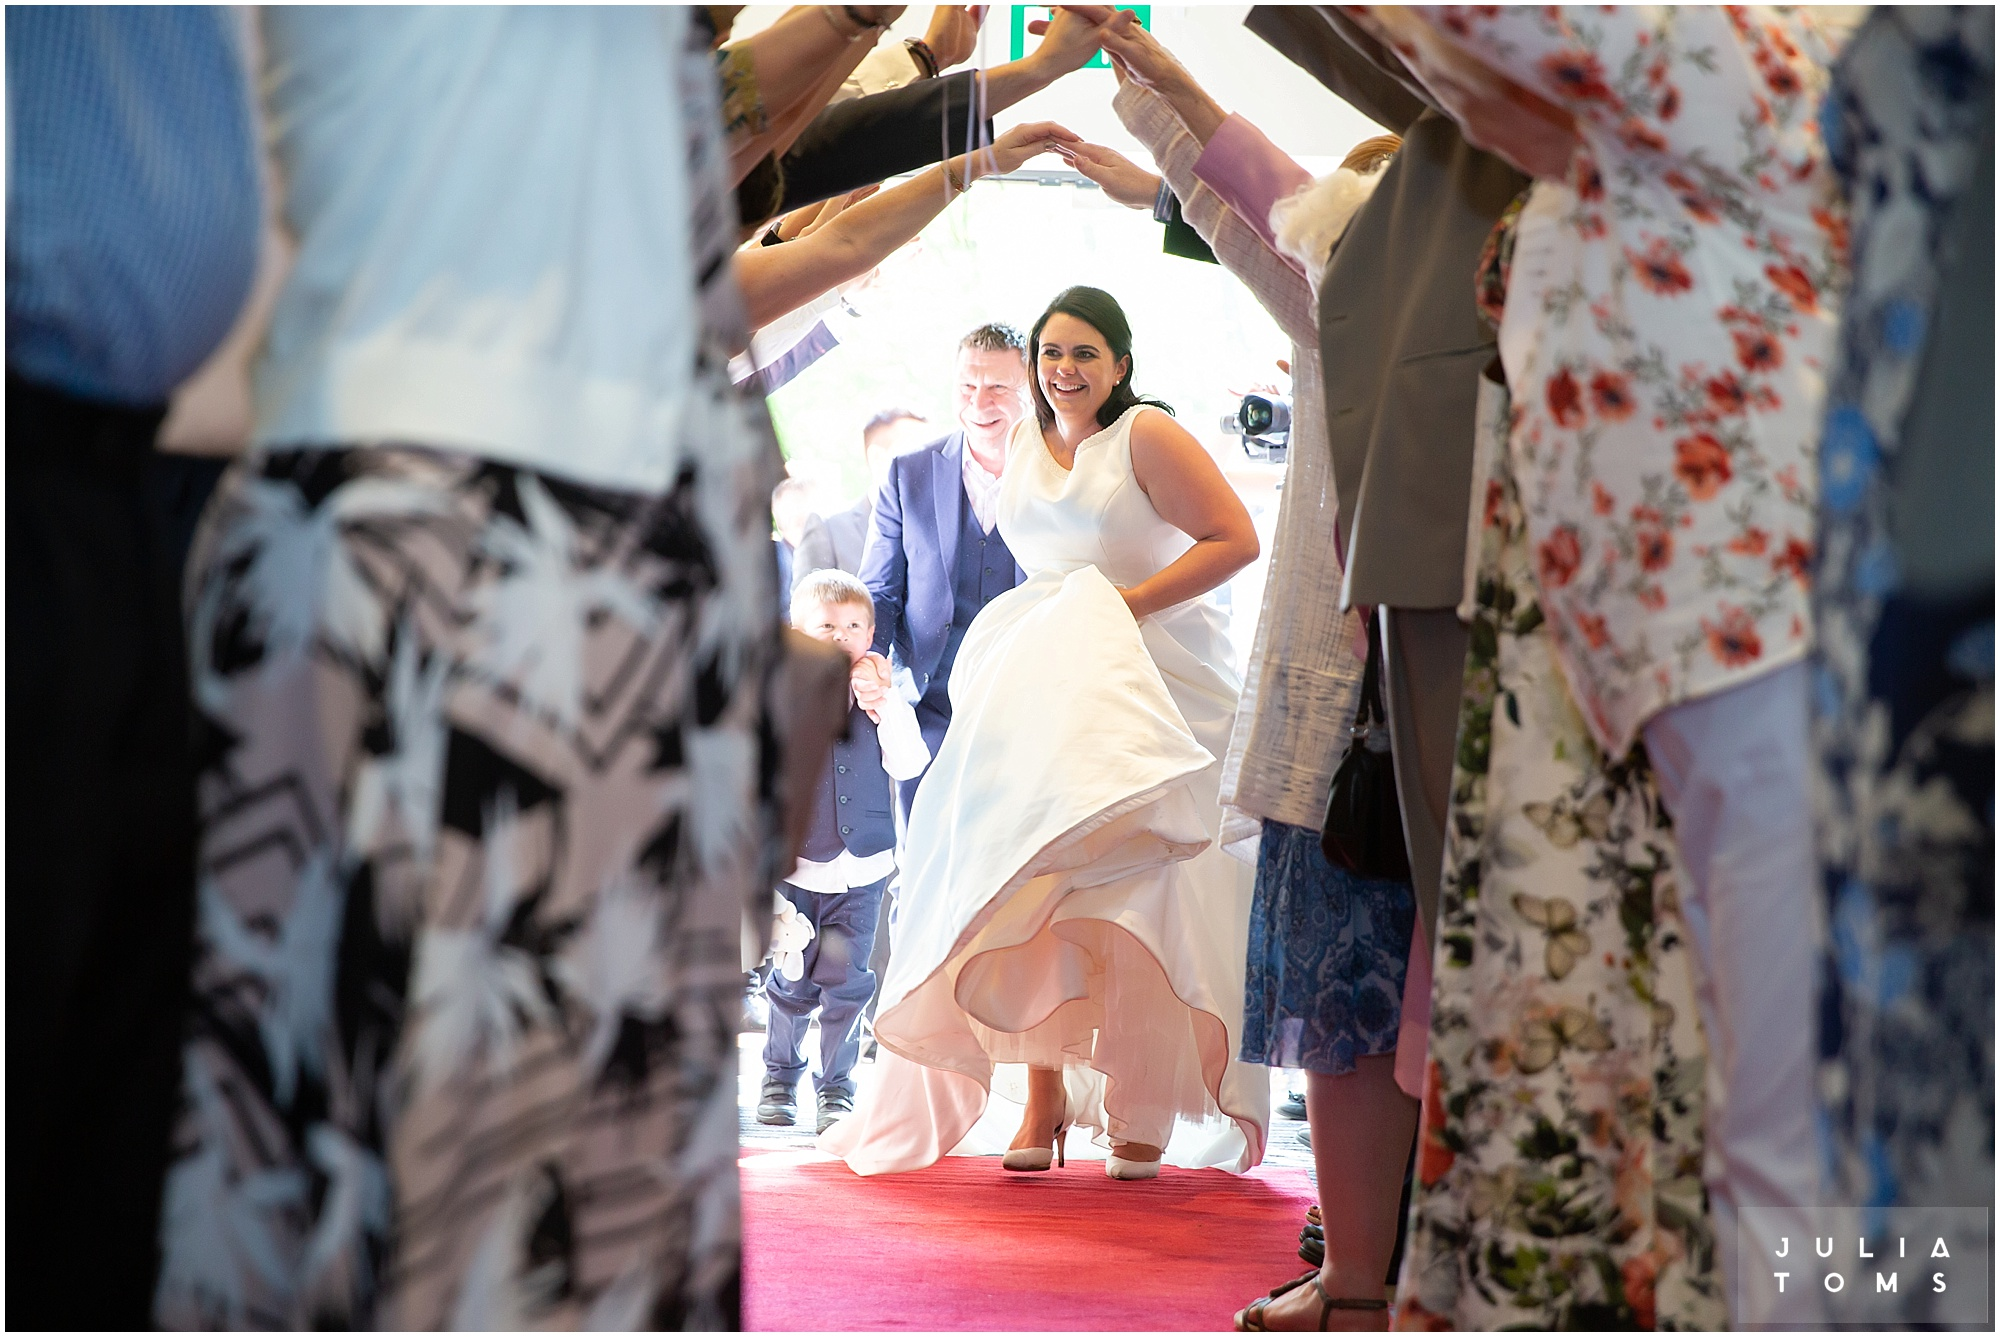 hampshire_wedding_photographer_juliatoms_055.jpg